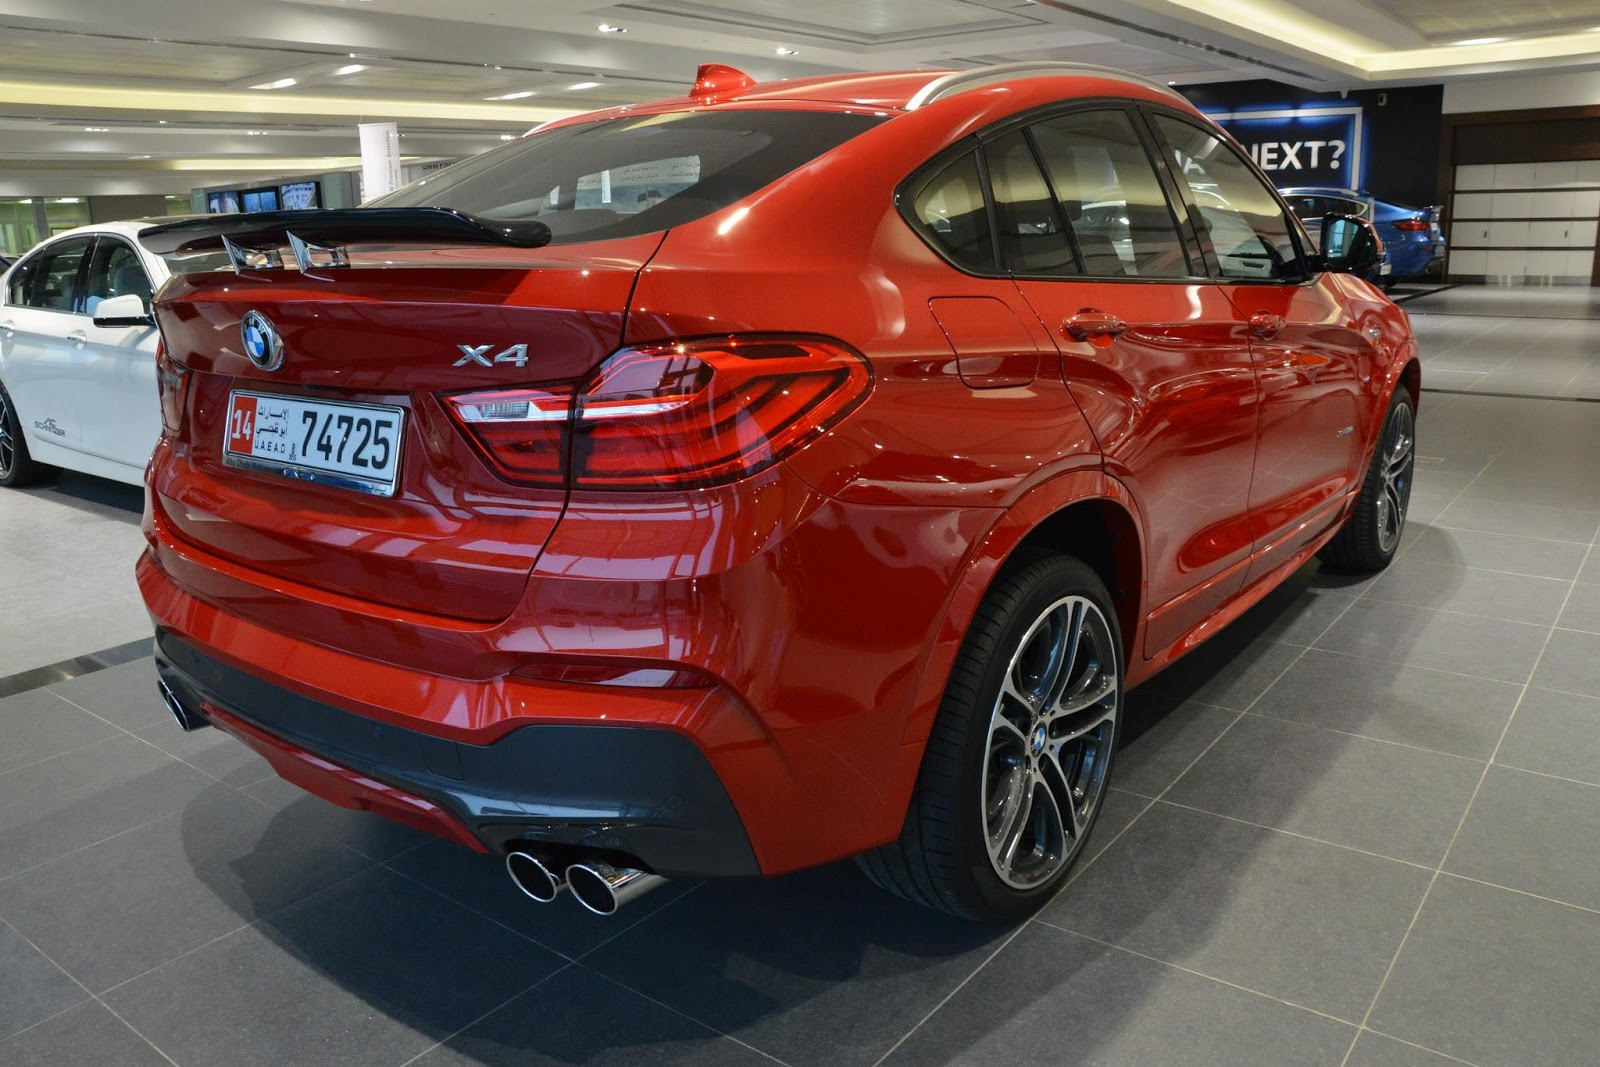 bmw x4 m sports in melbourne red and carbon black bmw x4 forum. Black Bedroom Furniture Sets. Home Design Ideas